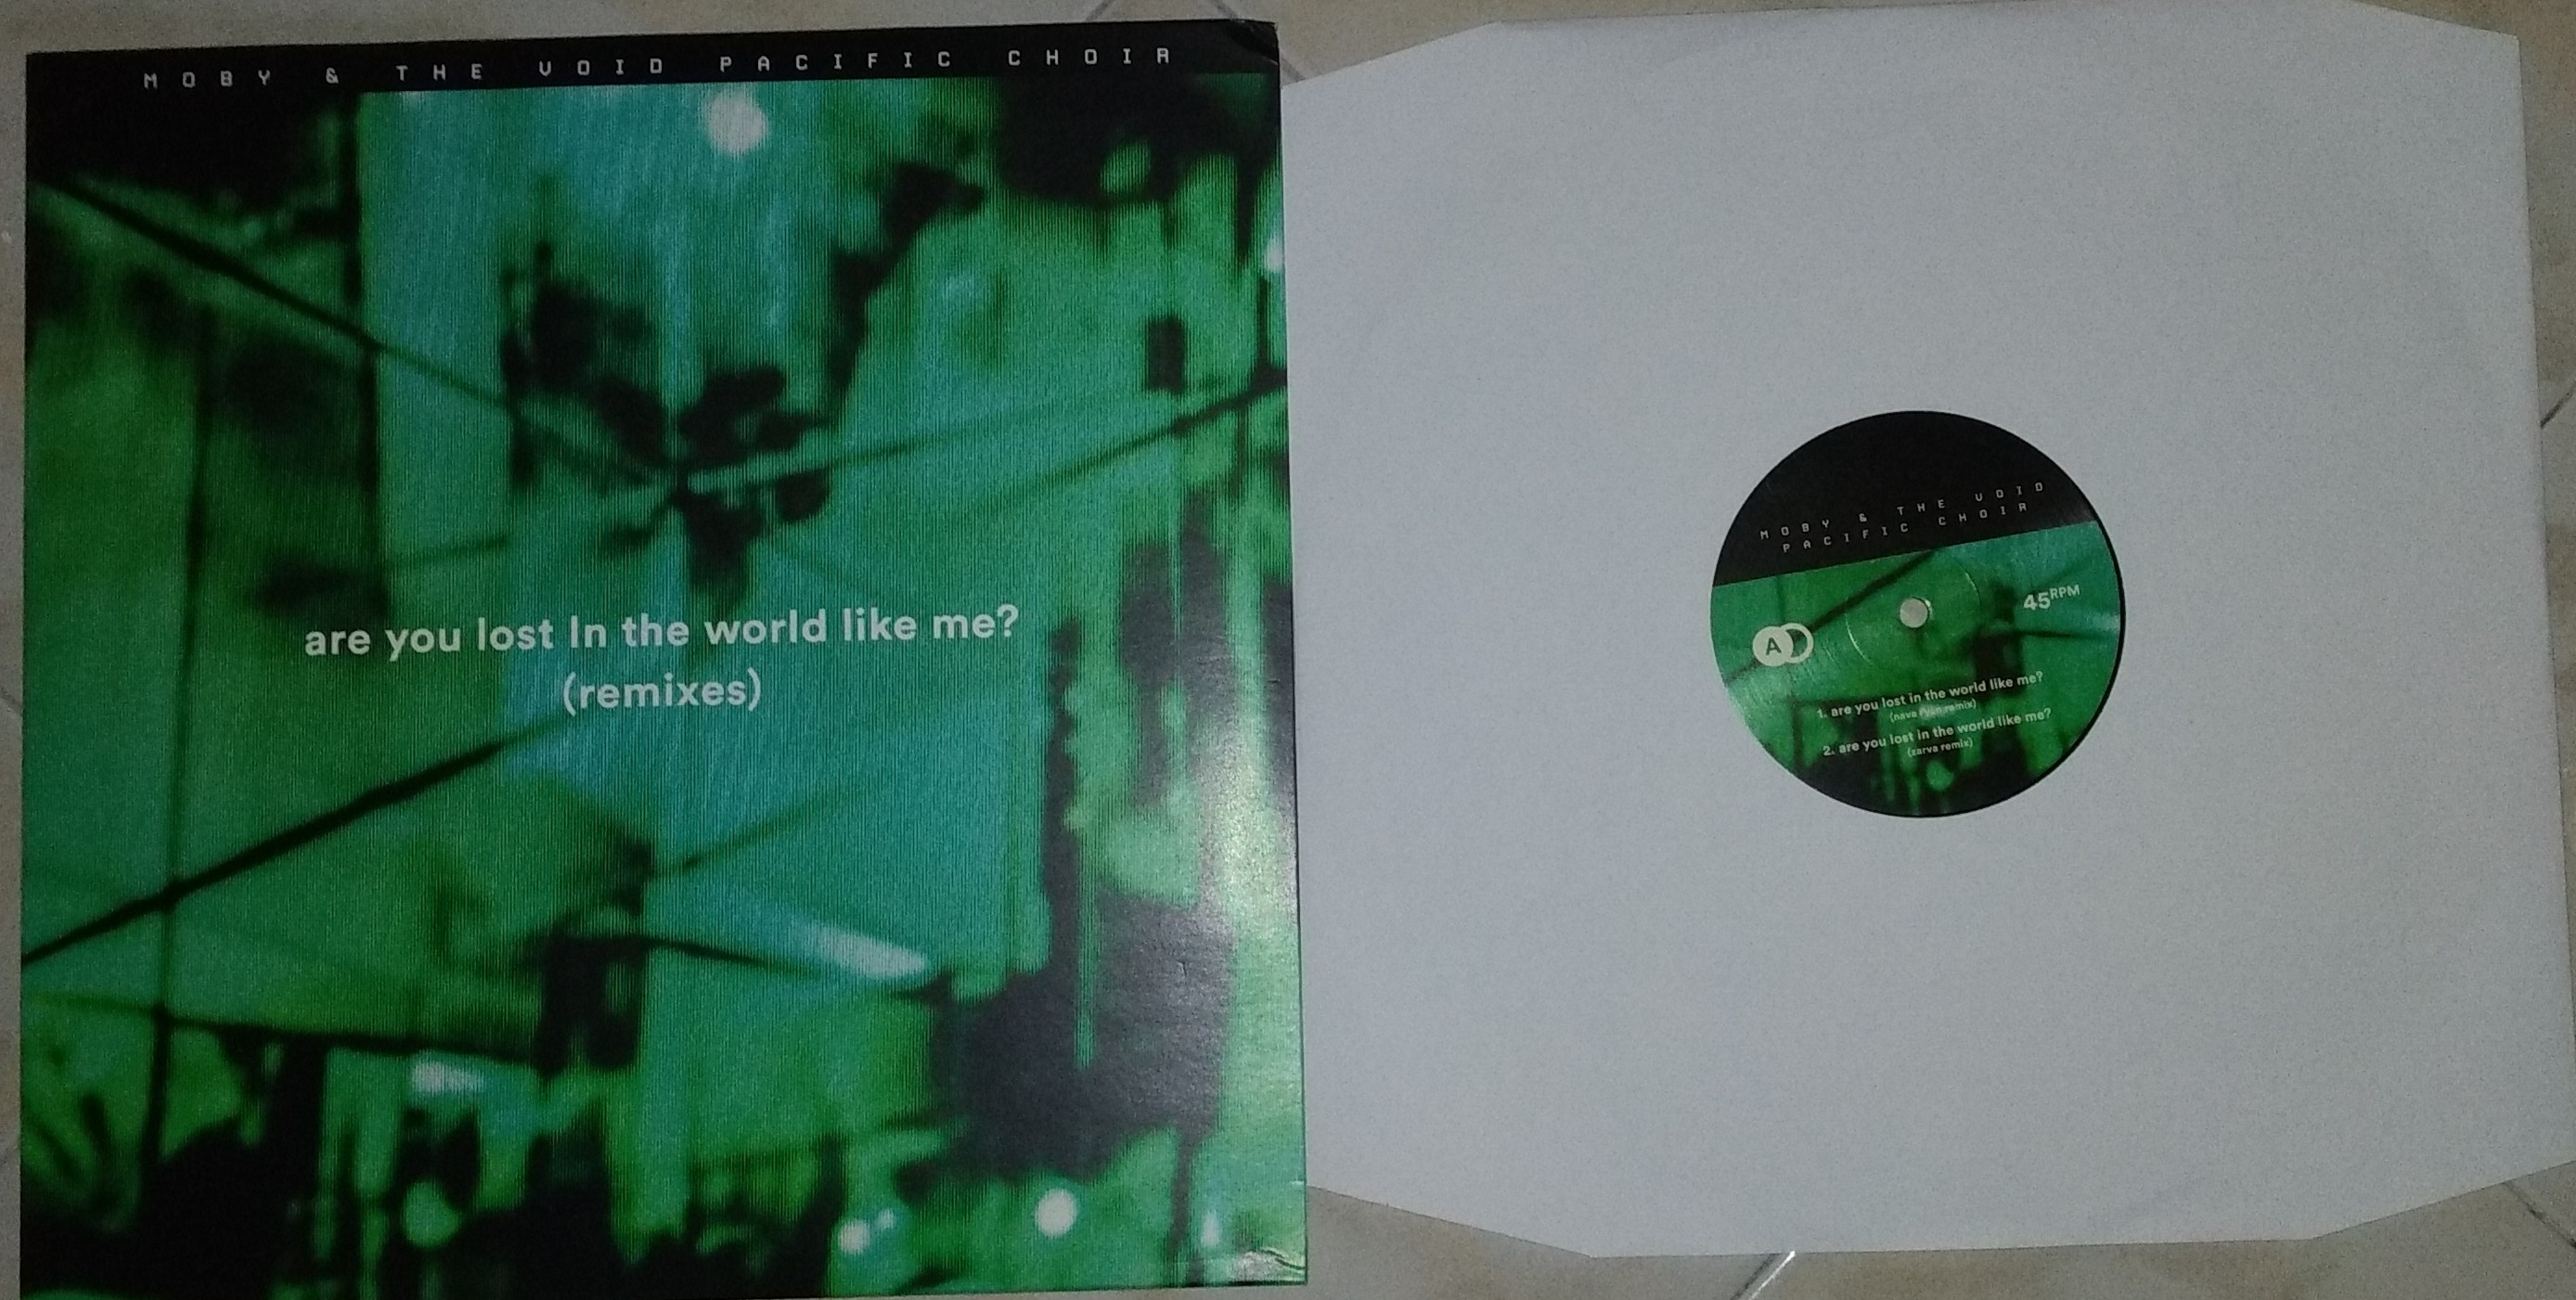 MOBY & THE VOID PACIFIC CHOIR – ARE YOU LOST IN THE WORLD LIKE ME? (REMIXES) (EP)